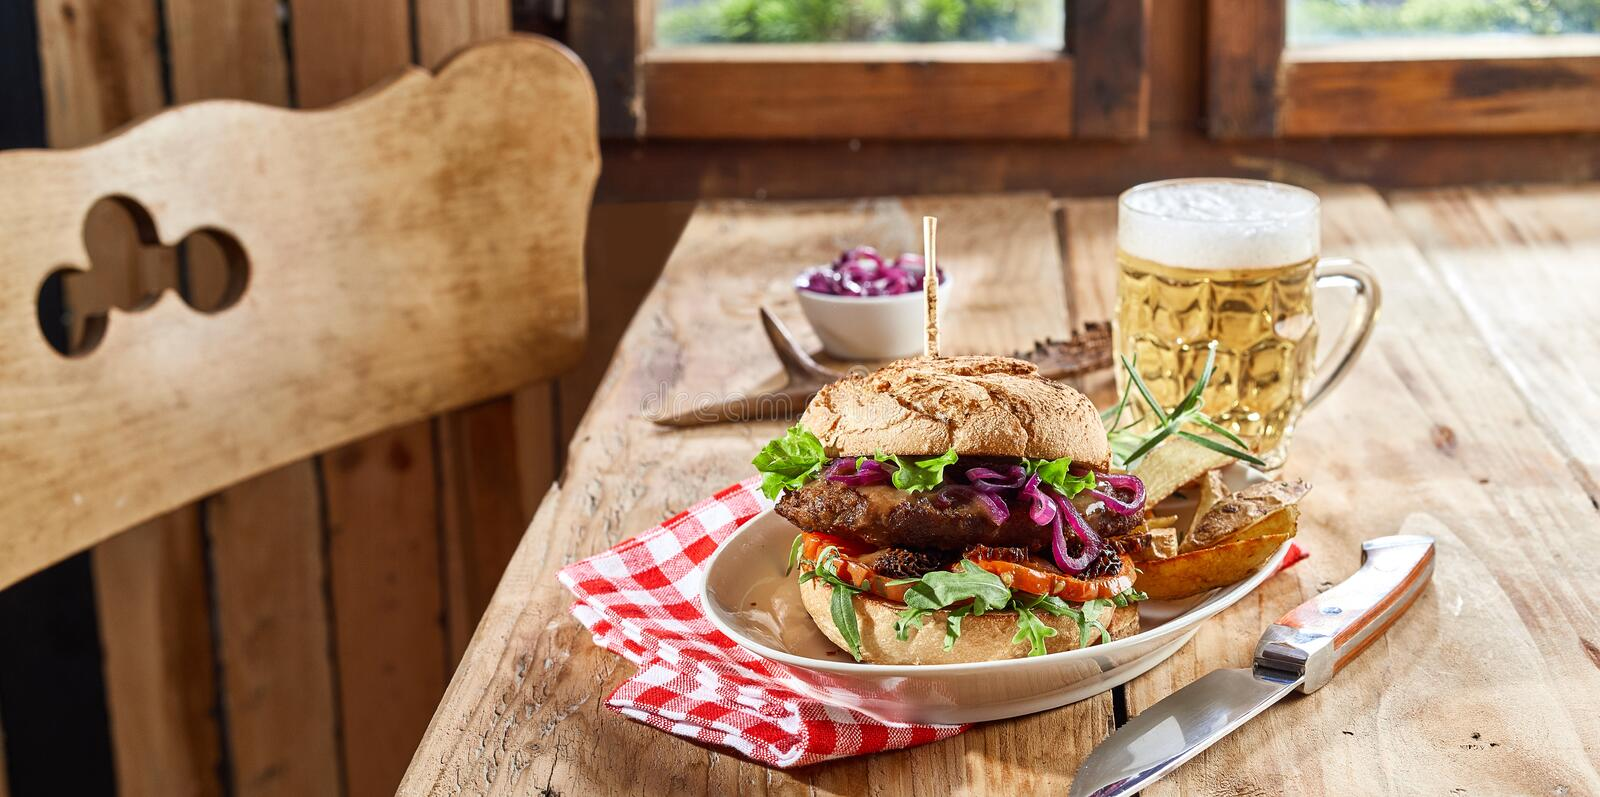 Venison burger with wild game patty royalty free stock image